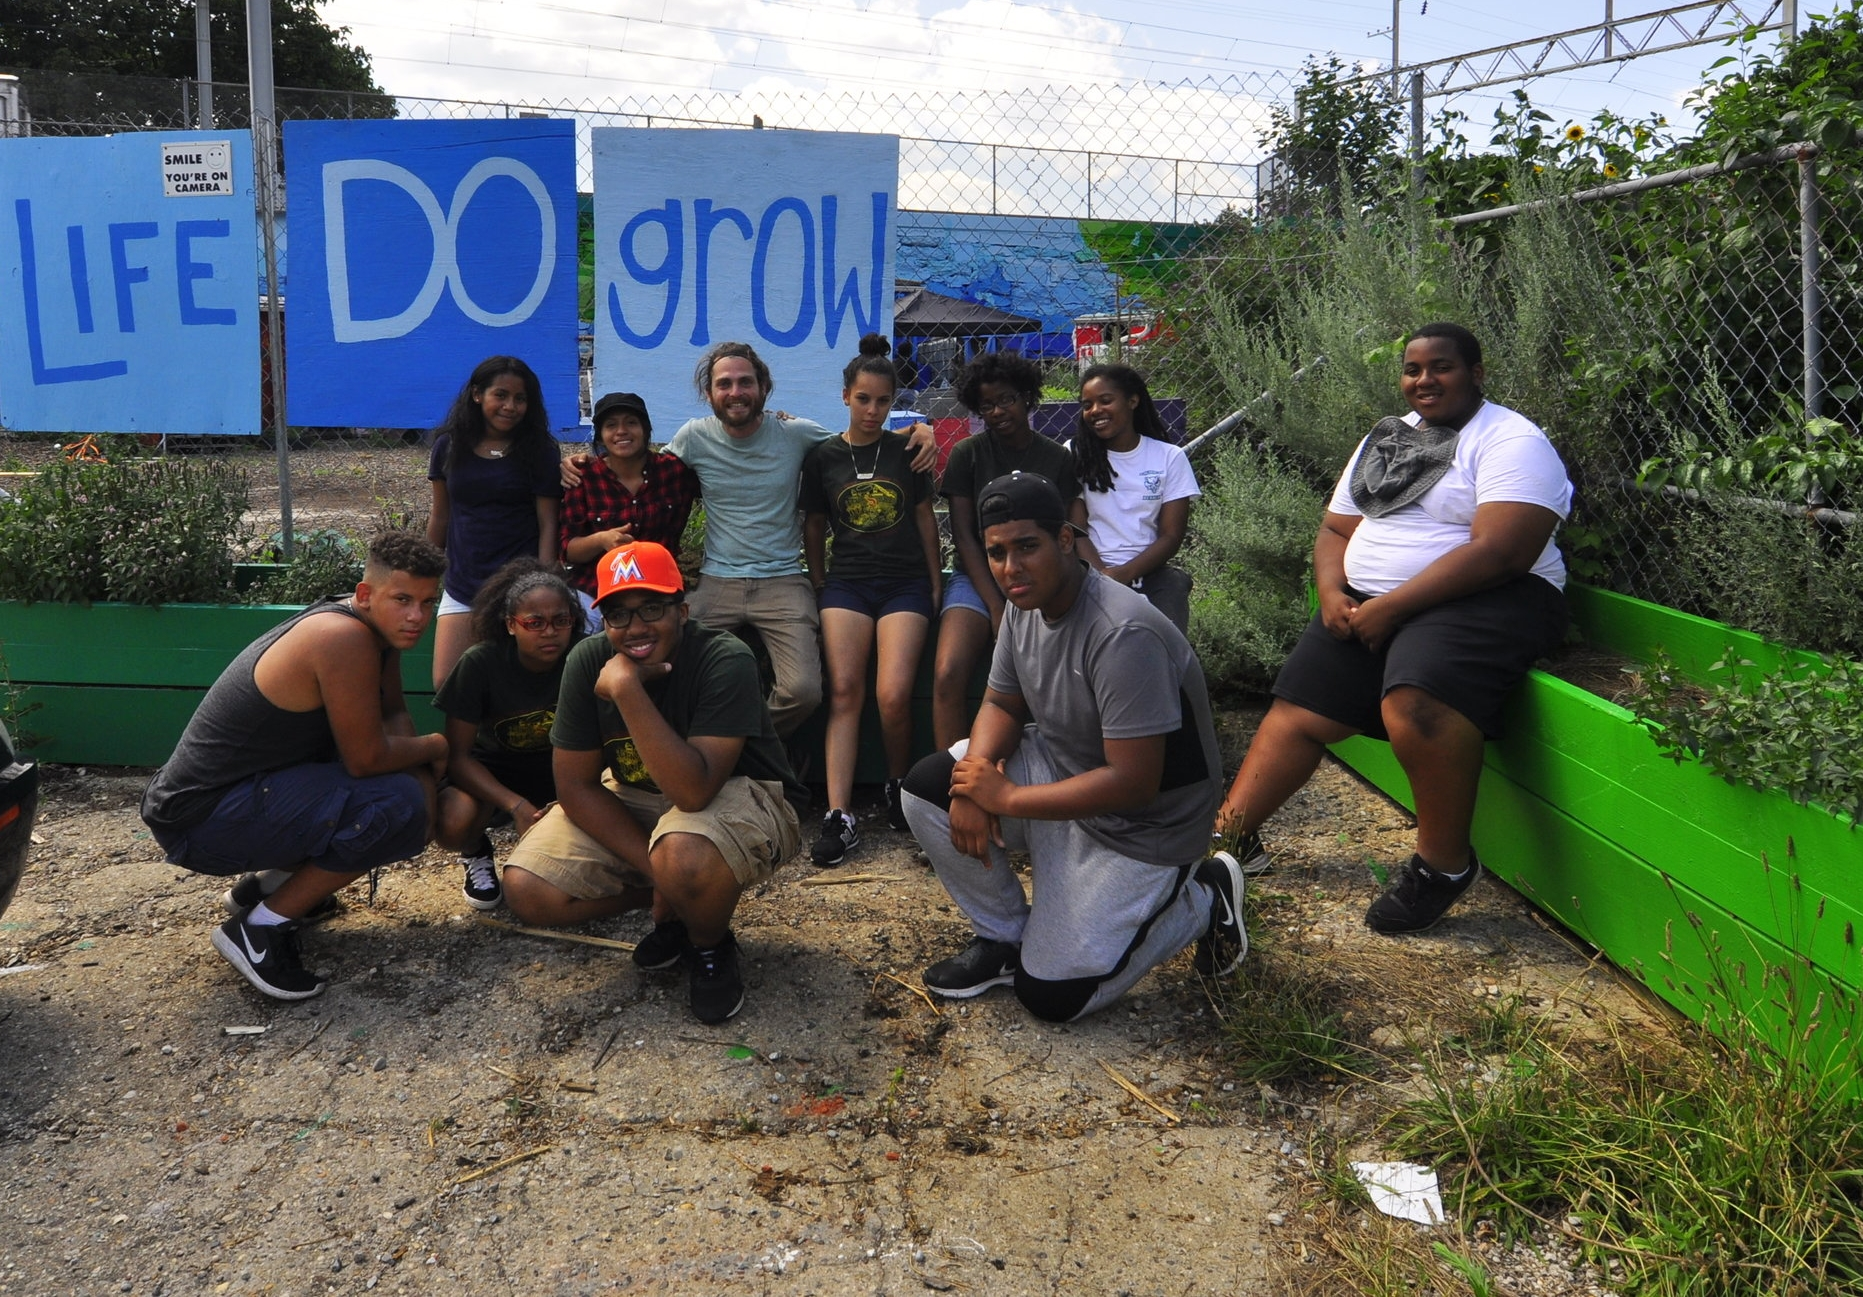 In July, the summer crew visited Life Do Grow Farm in Philadelphia!